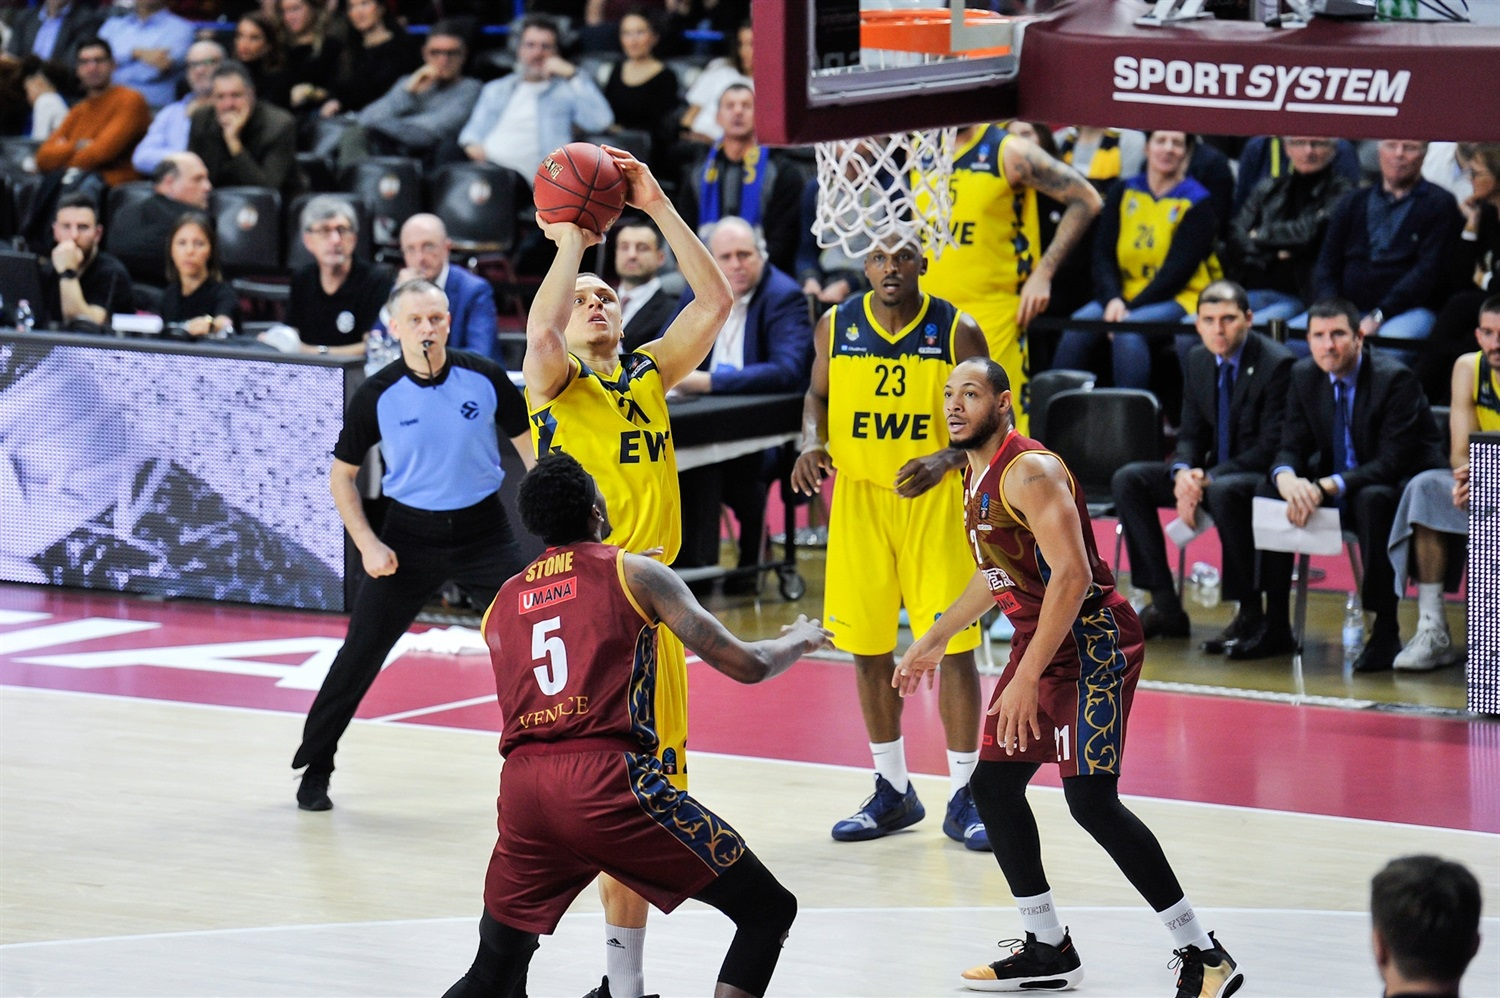 Robin Amaize - EWE Baskets Oldenburg (photo Alessandro Scarpa - Reyer) - EC19